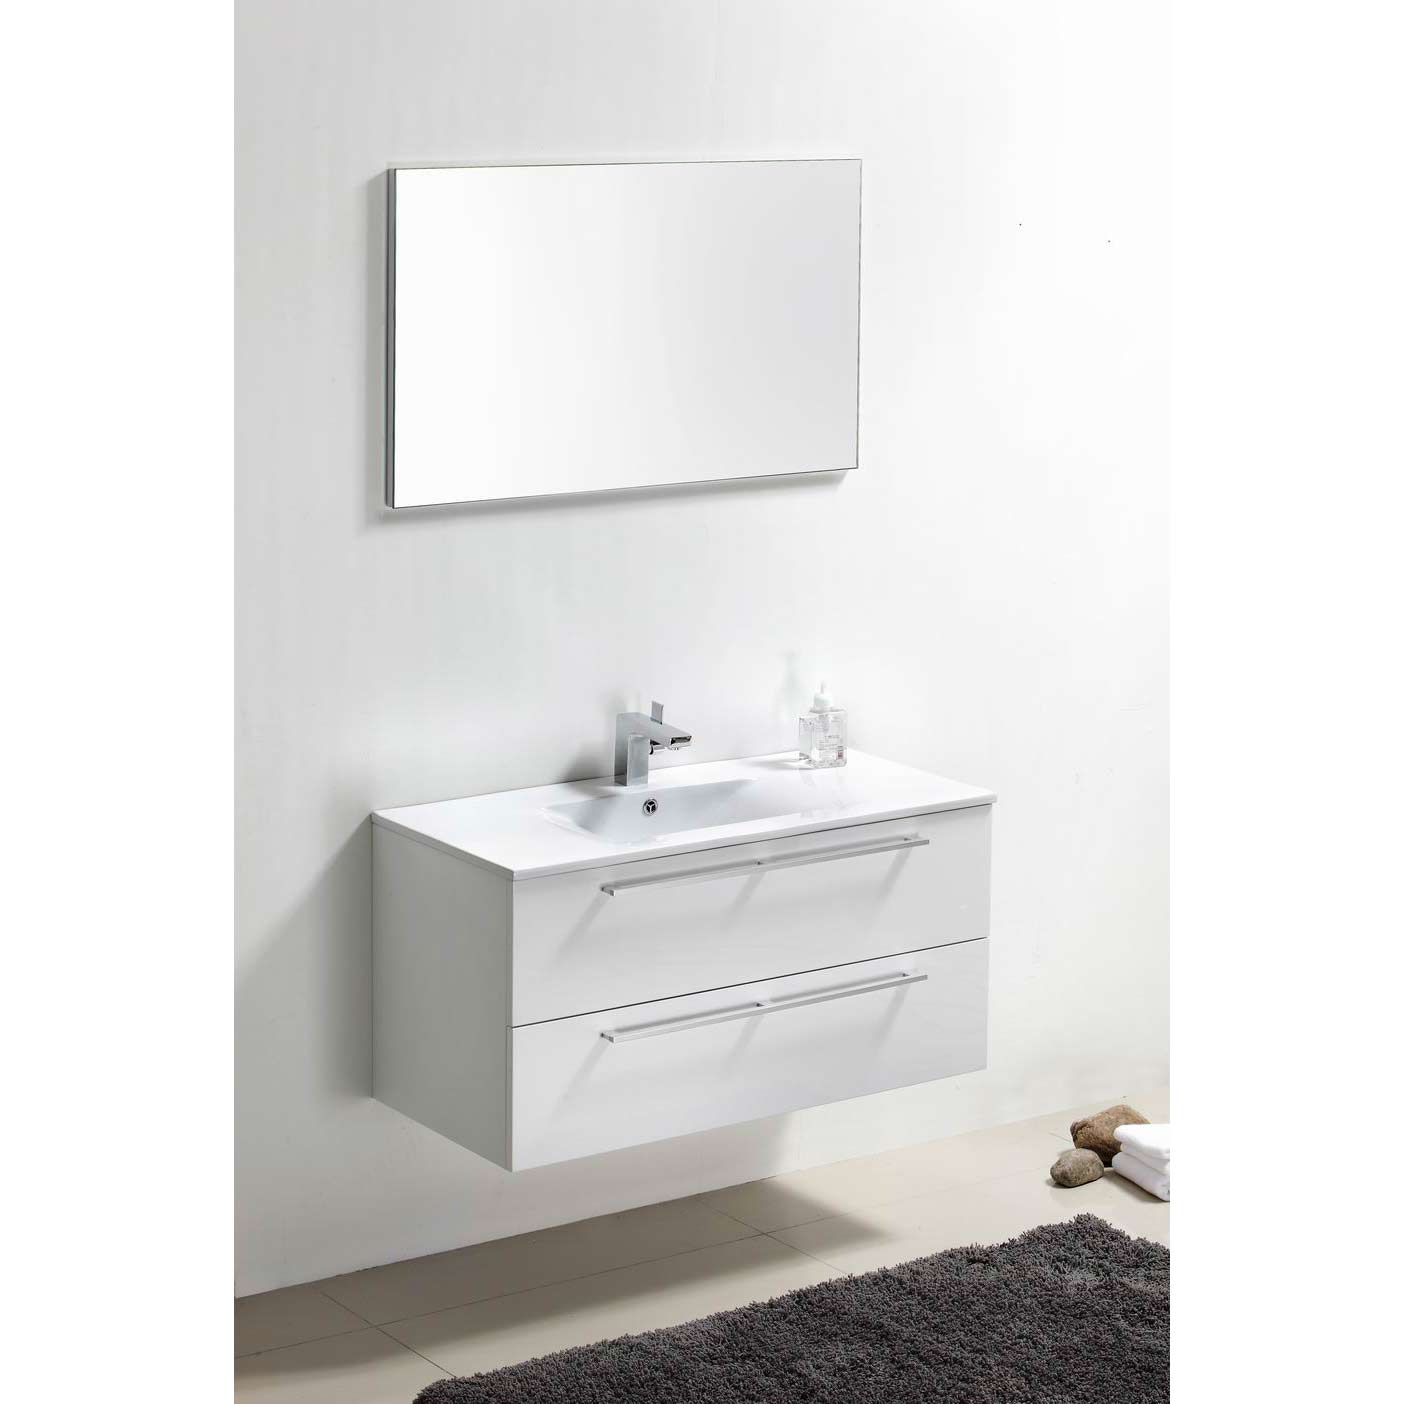 Buy caen 40 inch wall mount modern bathroom vanity set for Bathroom wall vanity cabinets